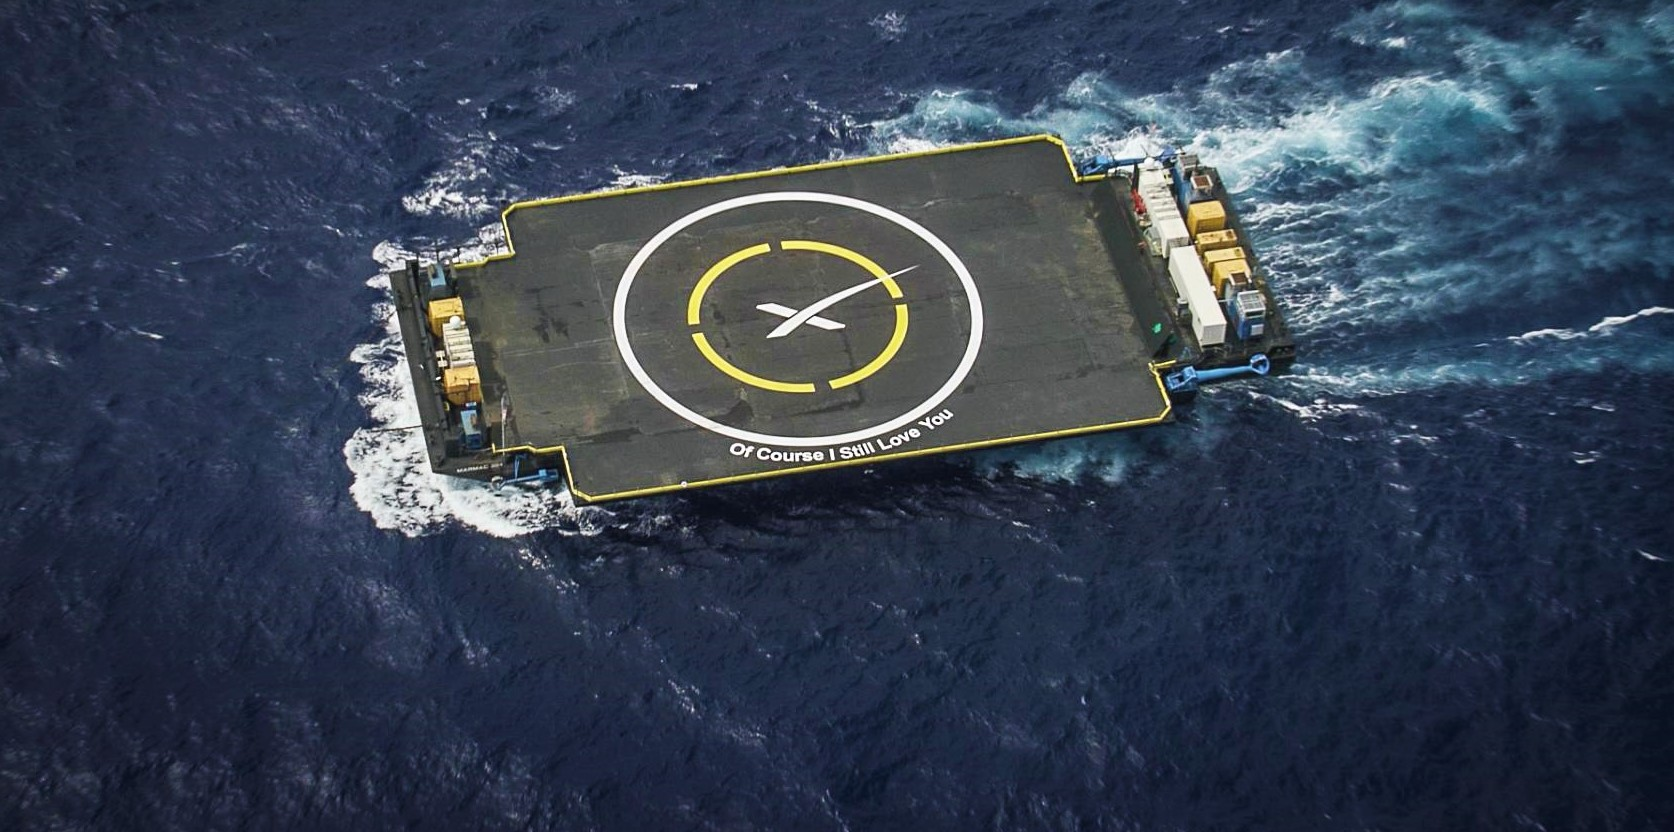 drone ship OCISLY June 2015 (SpaceX) 1 crop